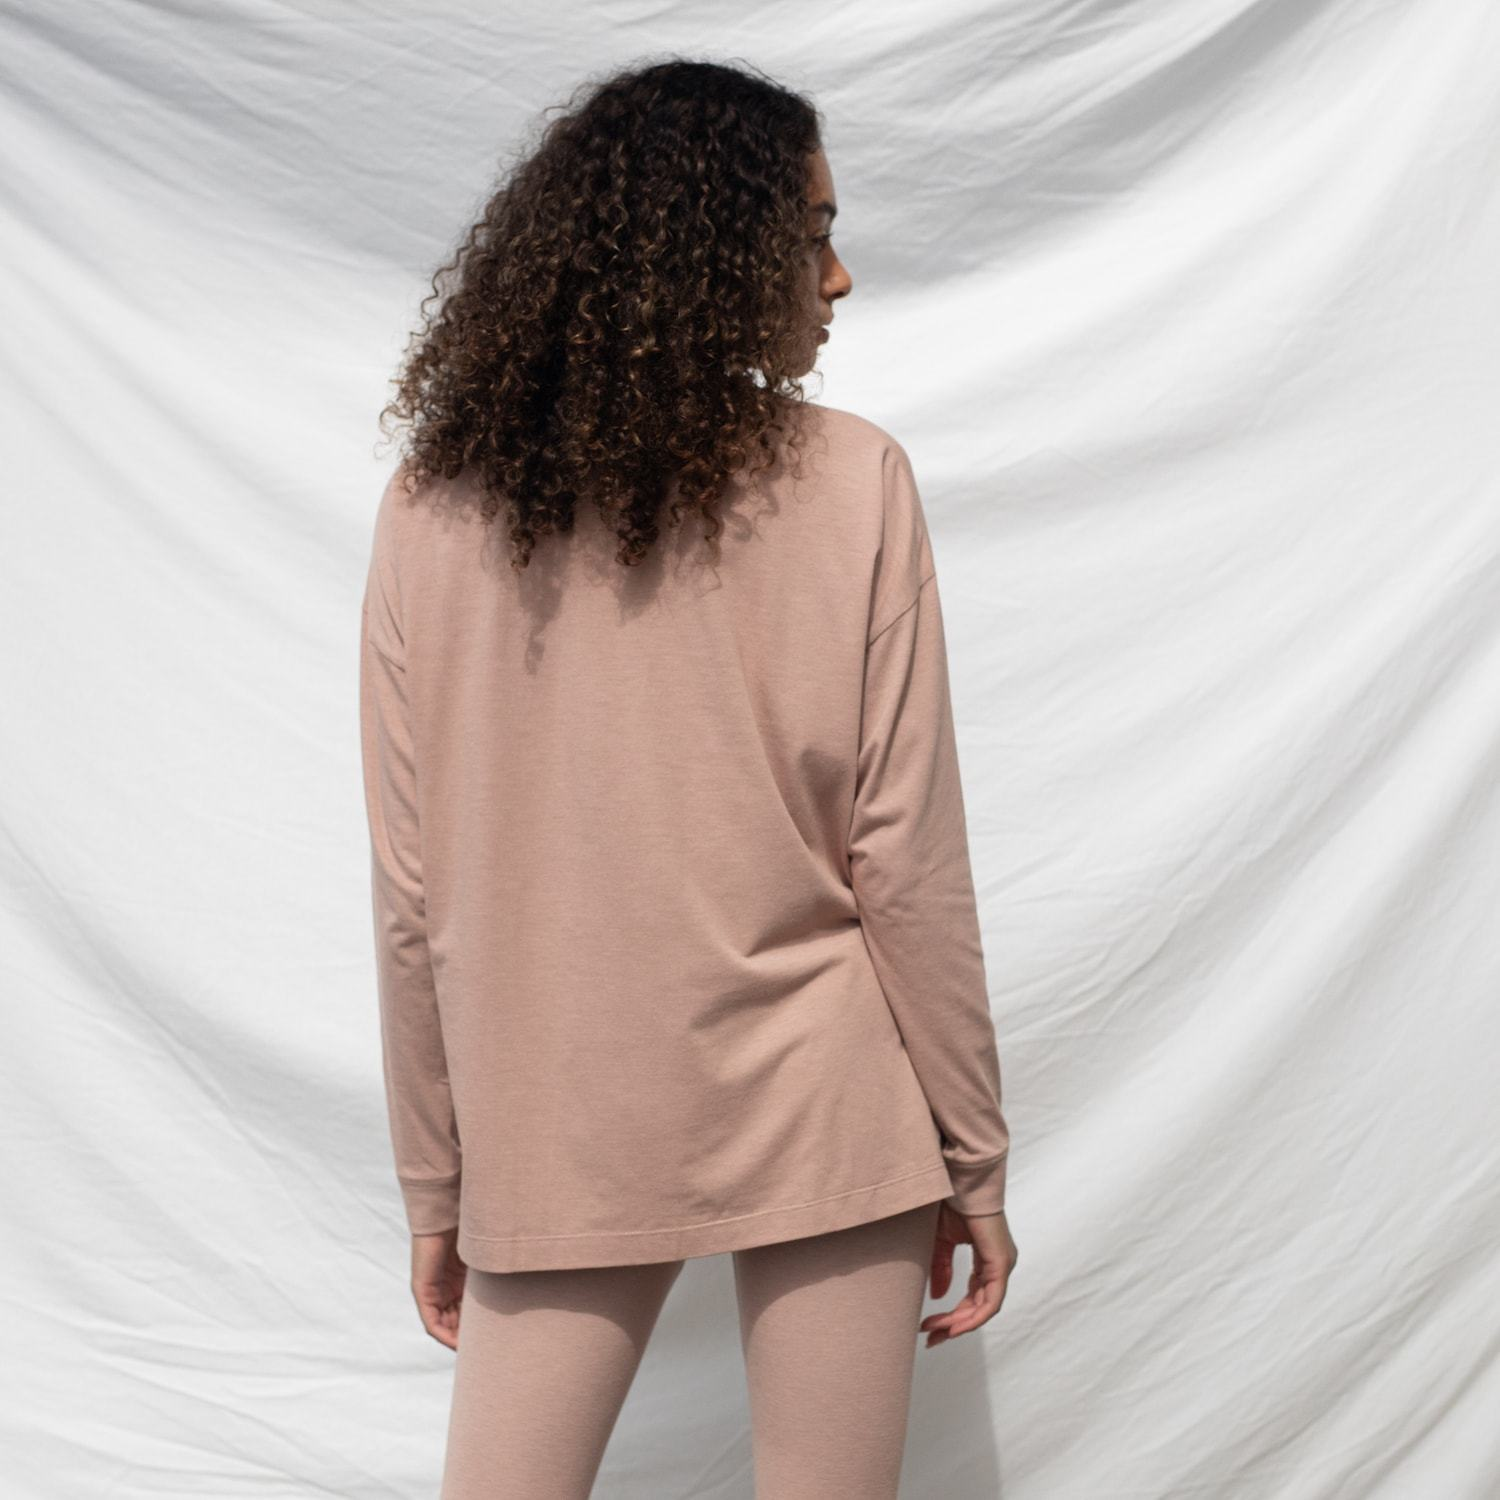 Lunya Sleepwear Long Sleeve Tee - #Bare